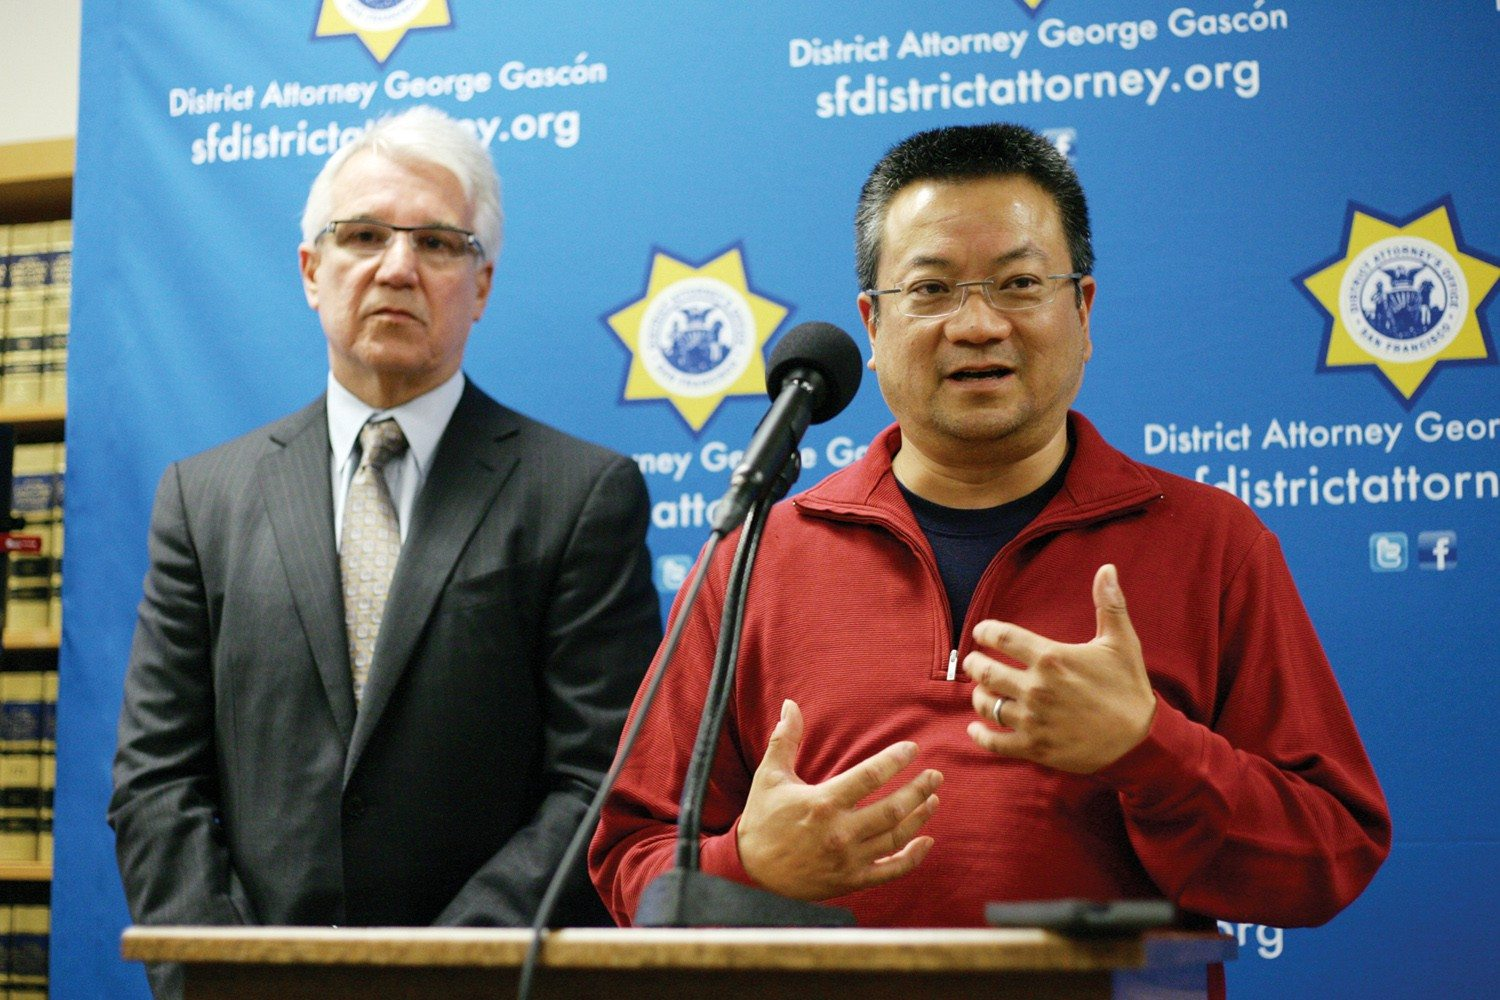 Mike Koozmin/The S.F. ExaminerSan Francisco District Attorney George Gascón and Terry Hui speak after Bucchere was sentenced.